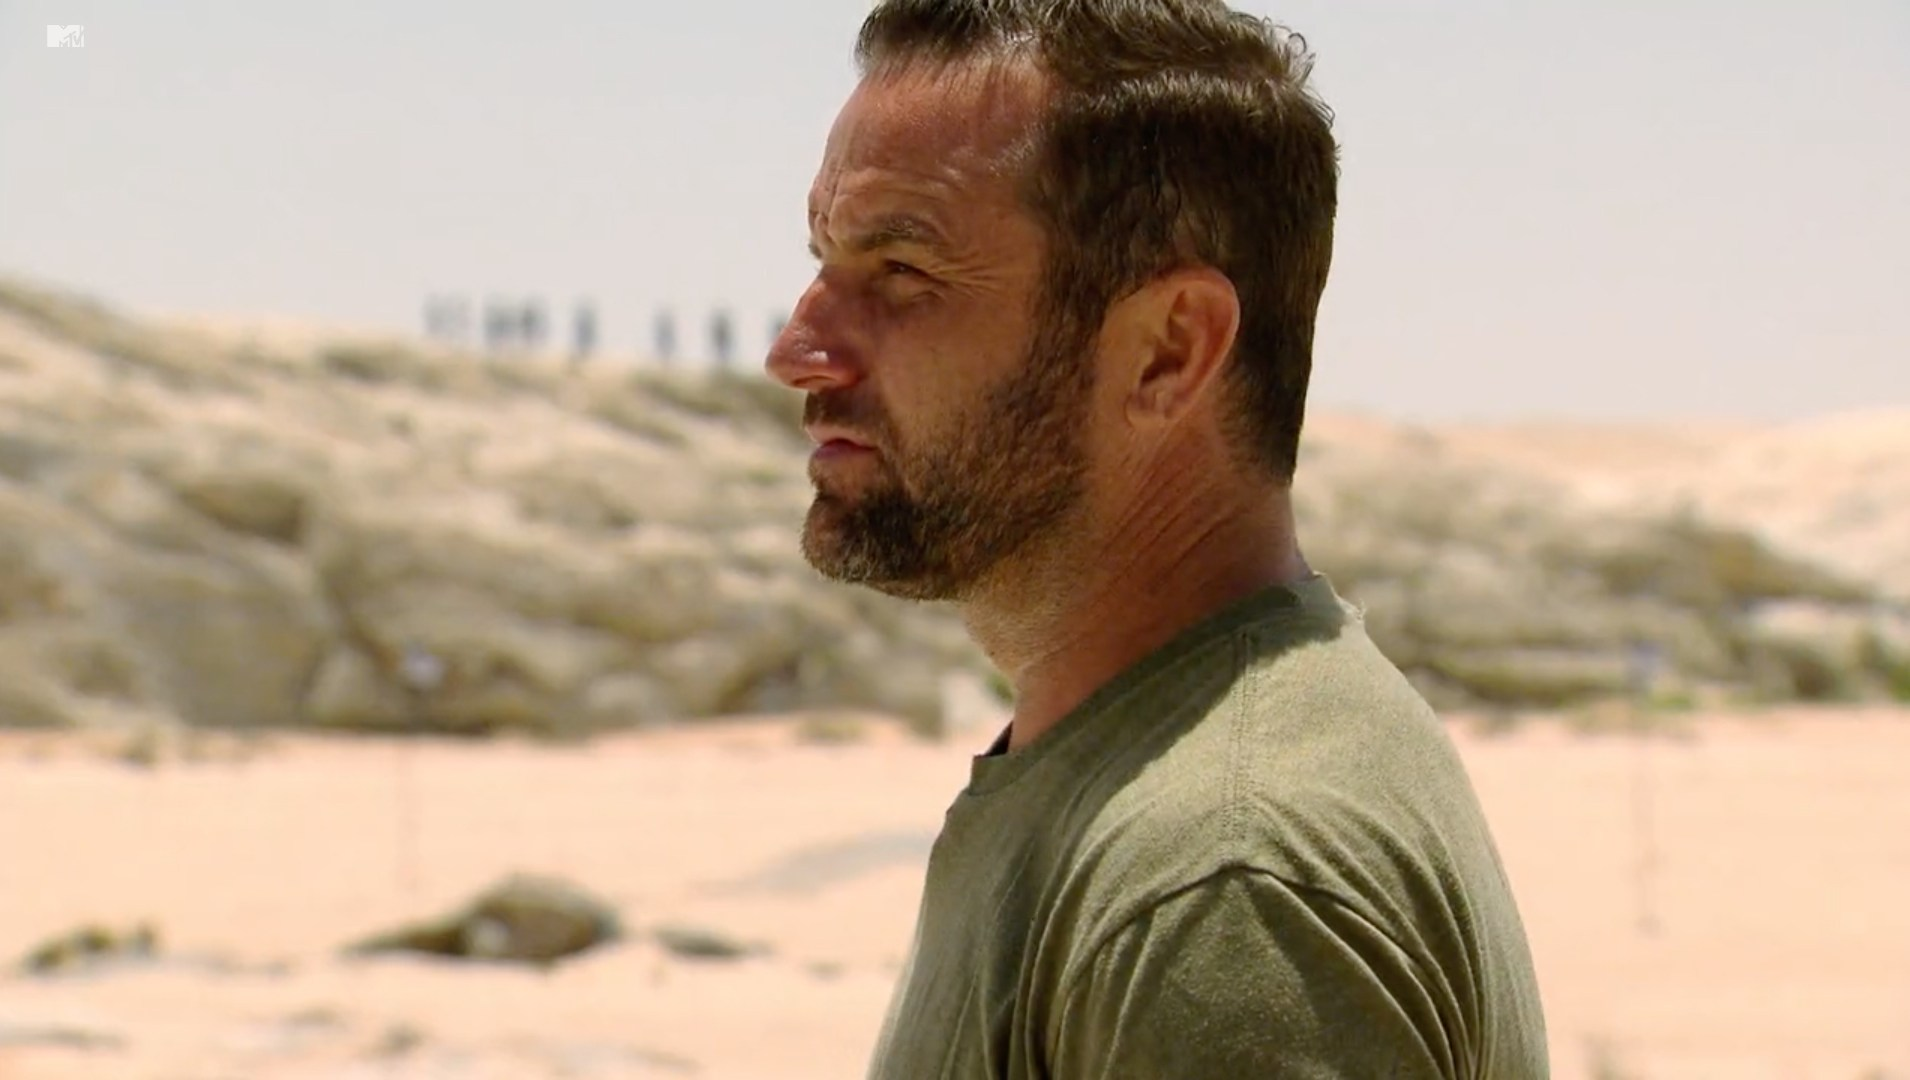 TJ Lavin Breaks Down 'The Challenge' Season 33, Sheds Light on Past Controversies